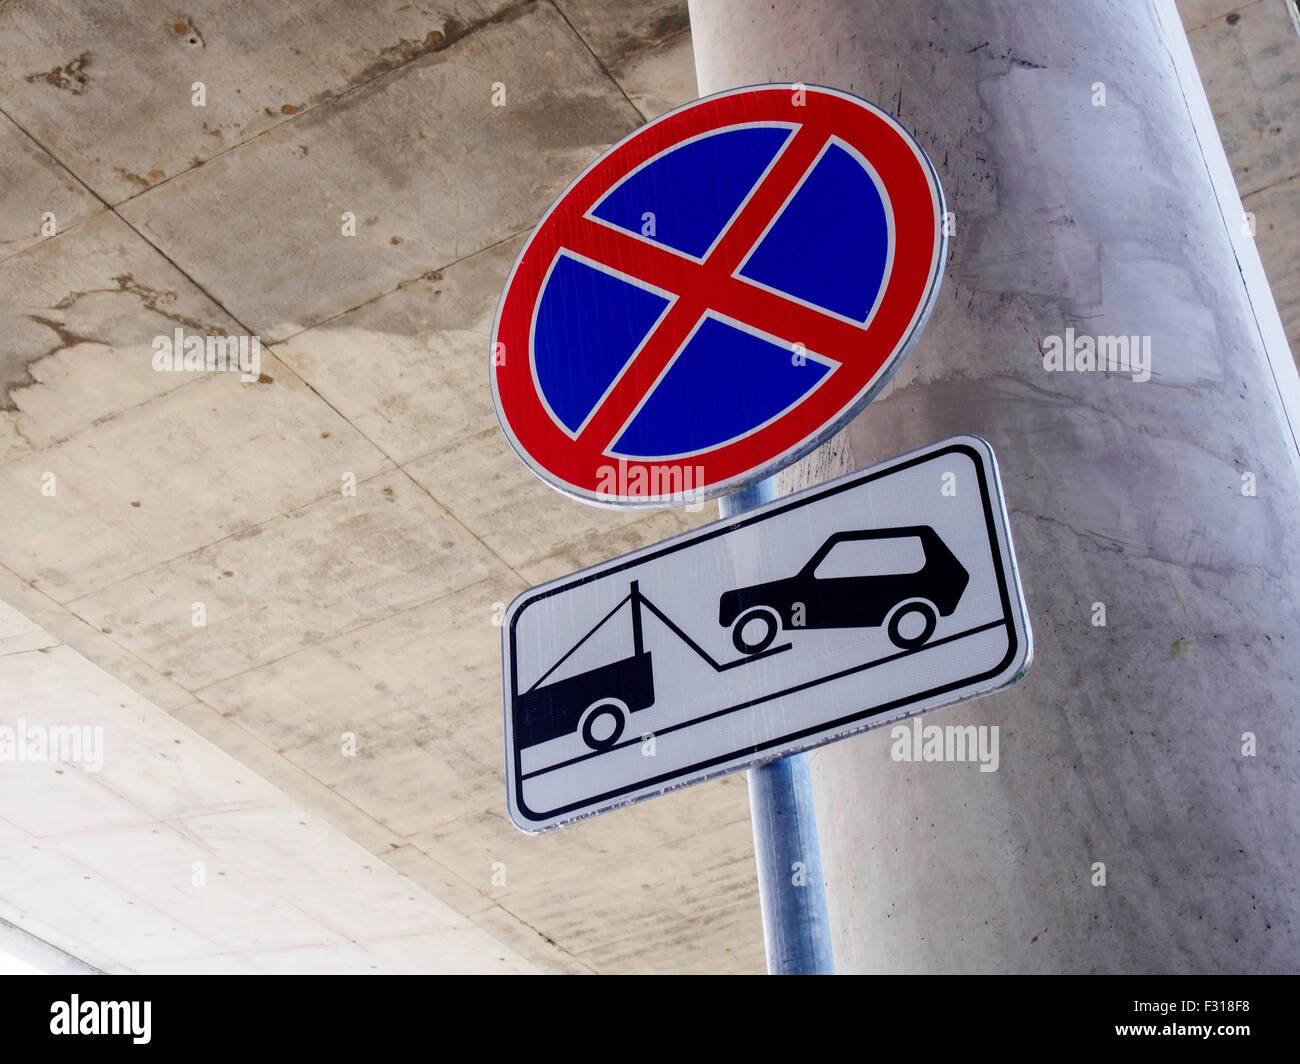 No parking sign on concrete construction in the background - Stock Image